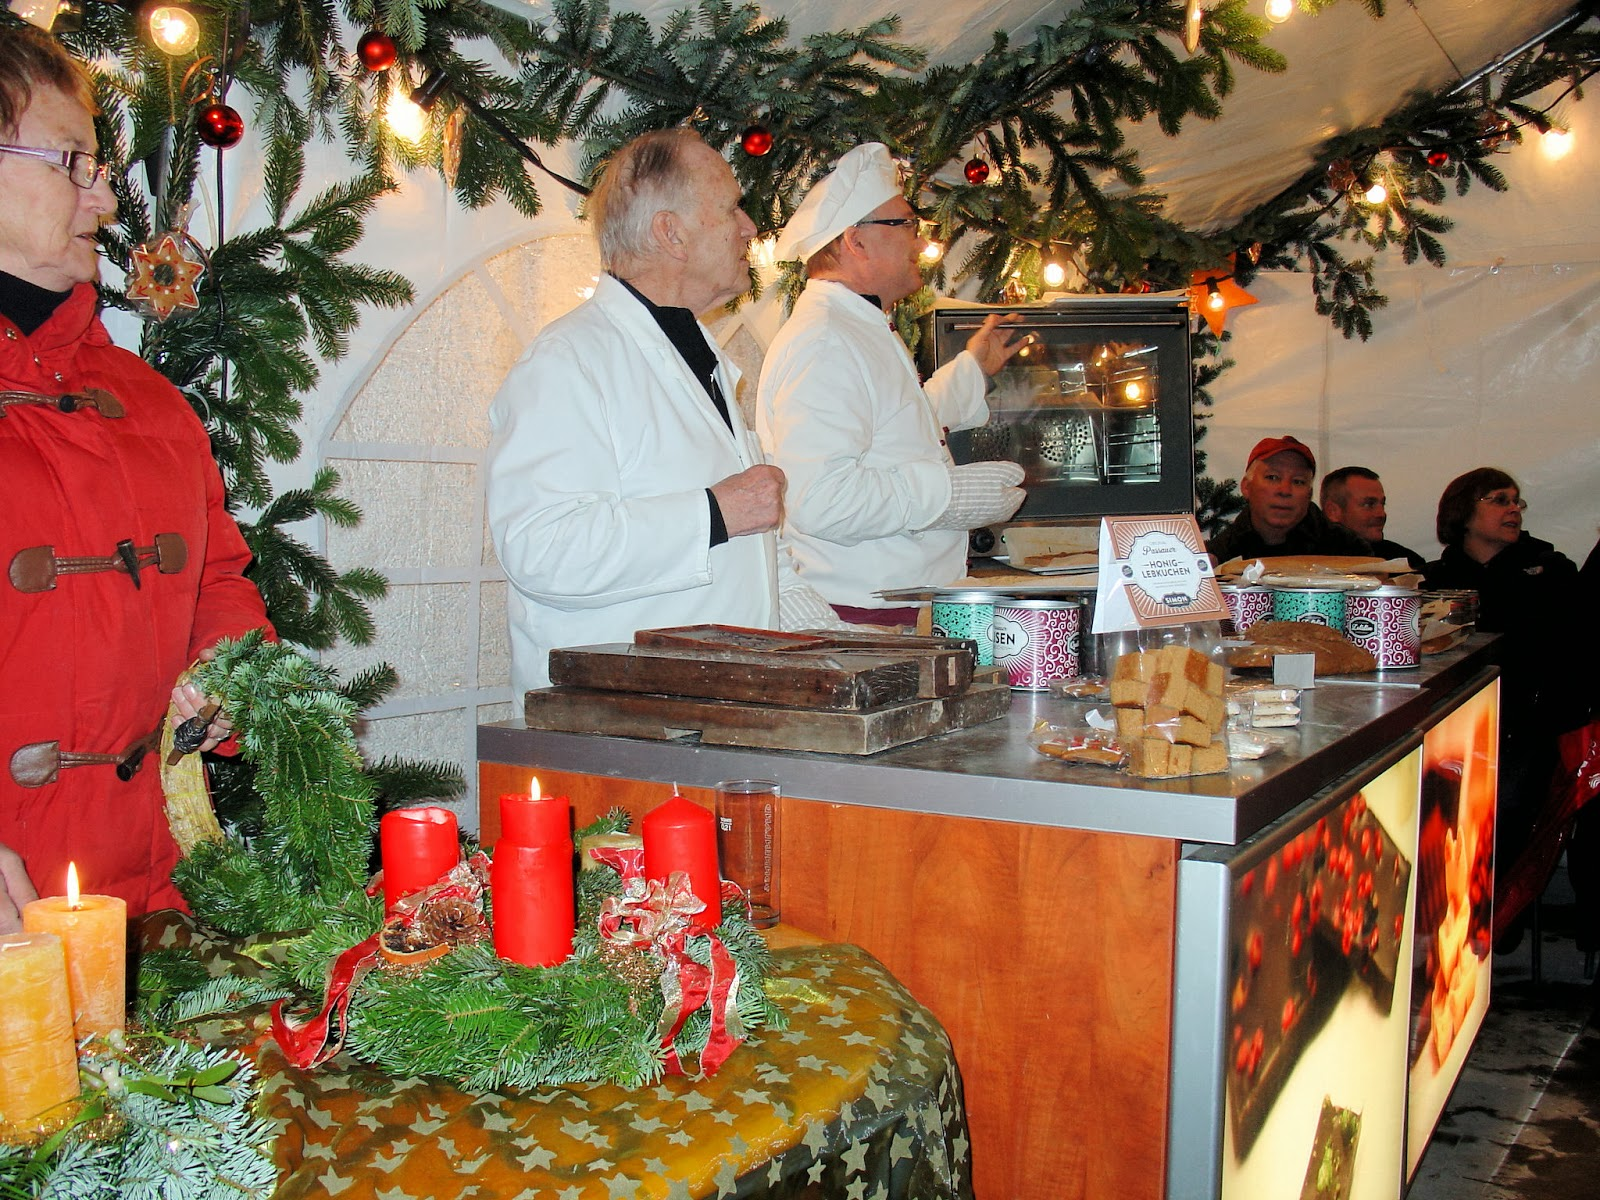 Gingerbread and Advent wreath-making demonstration inside a cozy little tent in Passau.